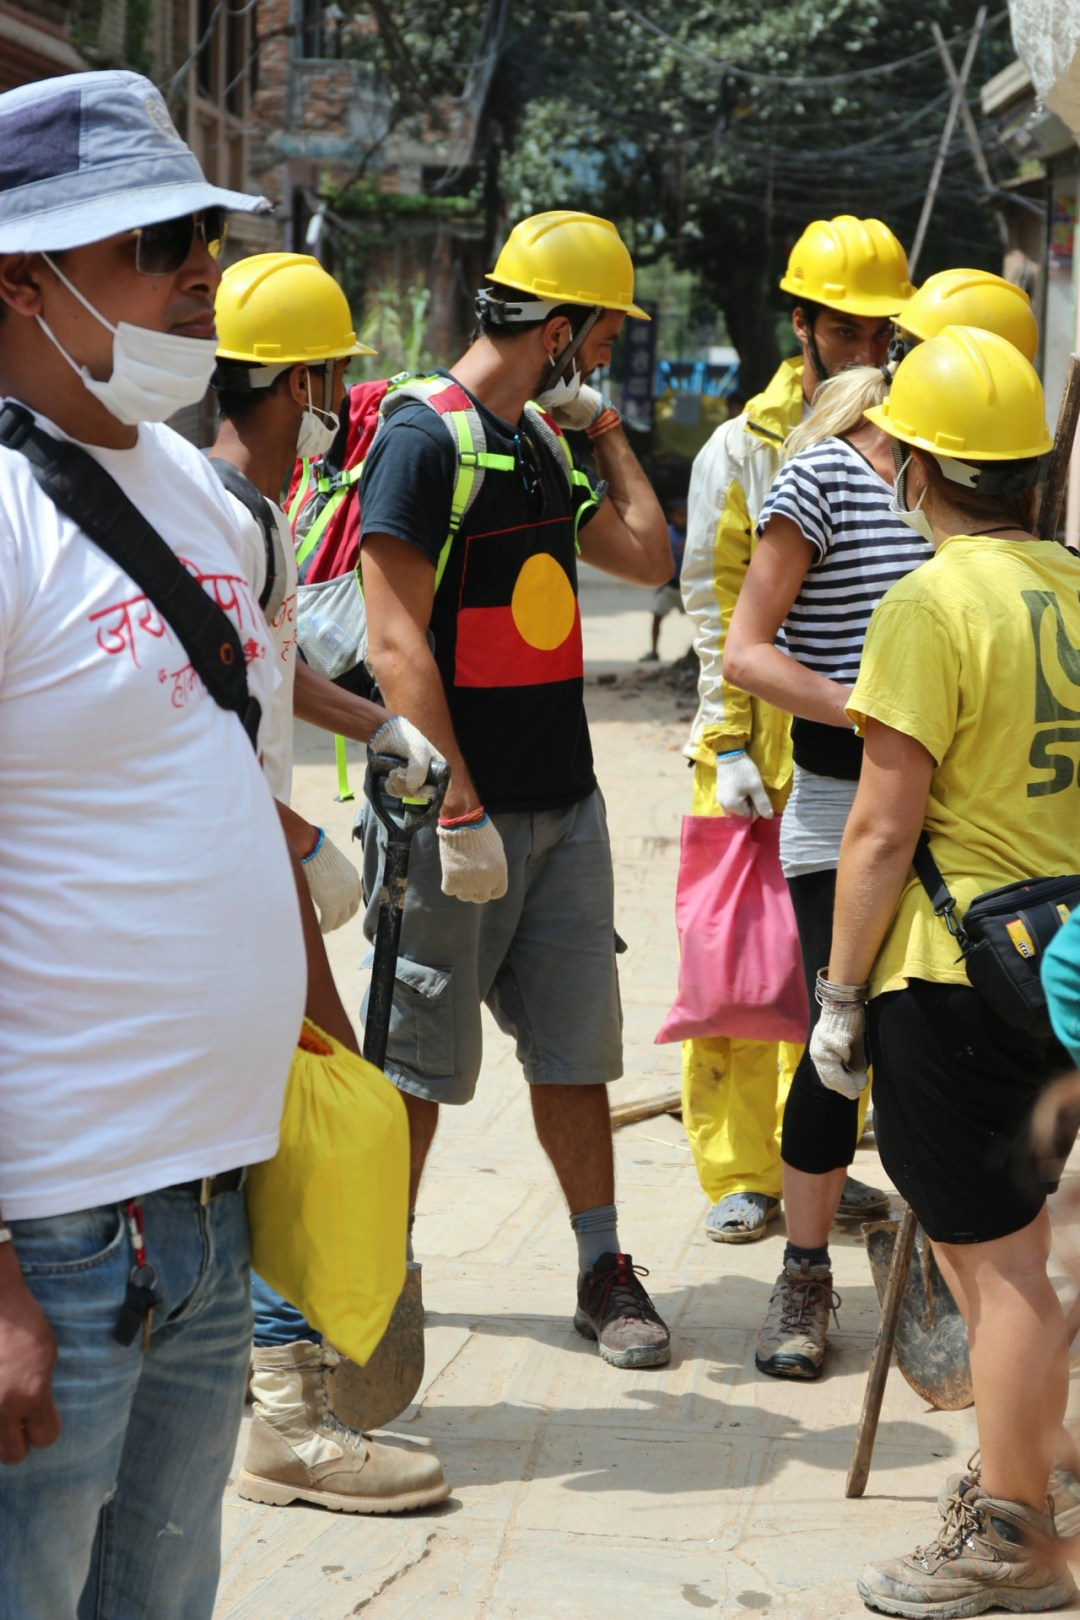 Volunteers from around the world, even Italians wearing distinguishable, to the author, designs on their shirts